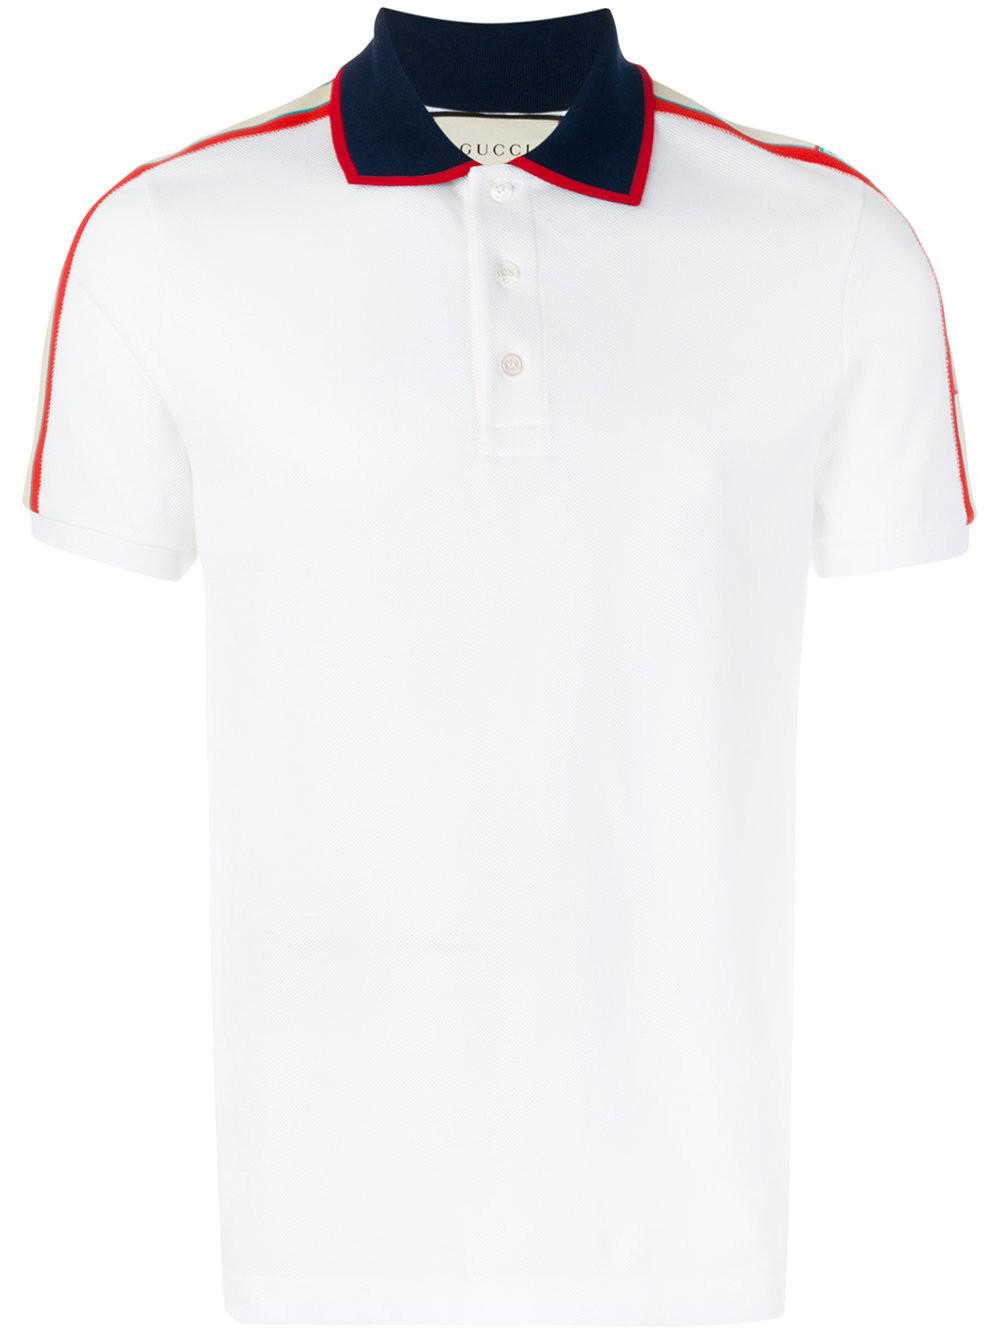 03db428c Gucci T-shirt Polo in White for Men - Lyst